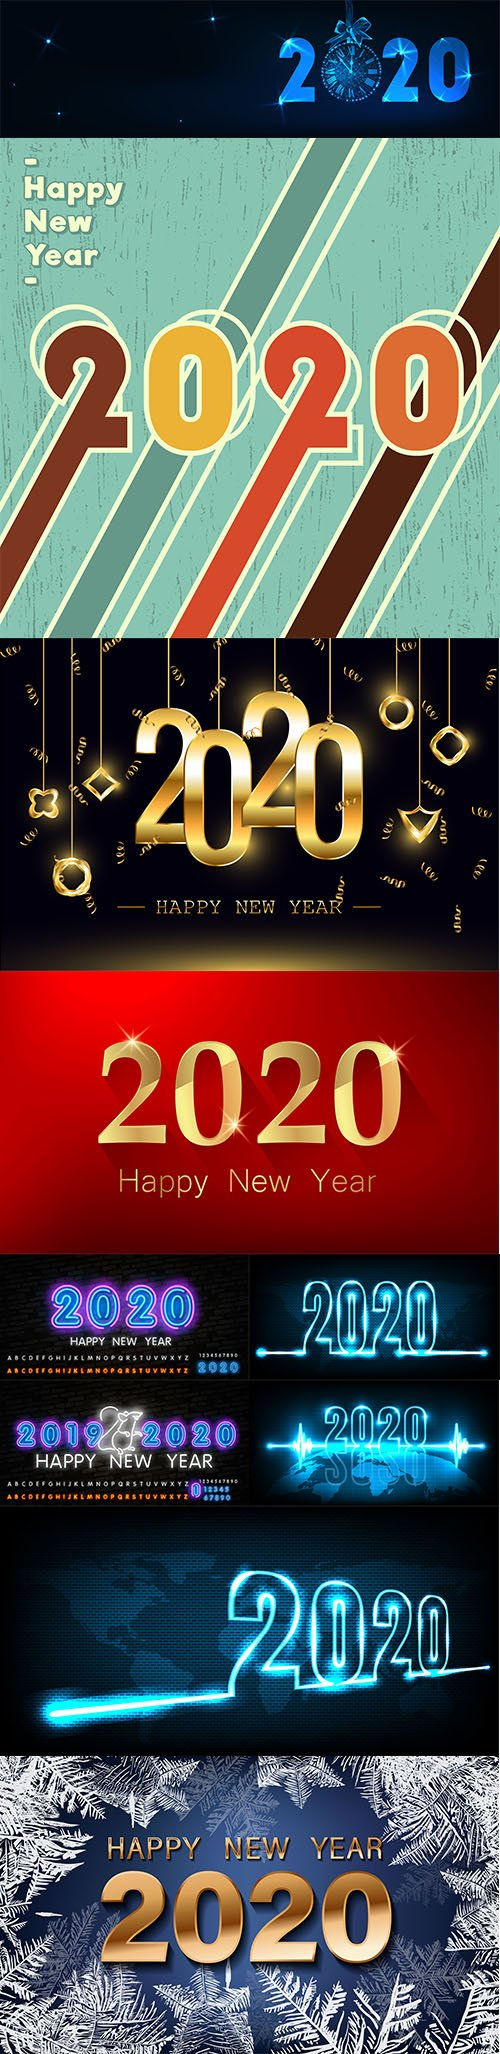 Merry Christmas and Happy New Year 2020 Illustrations Vector Set 2